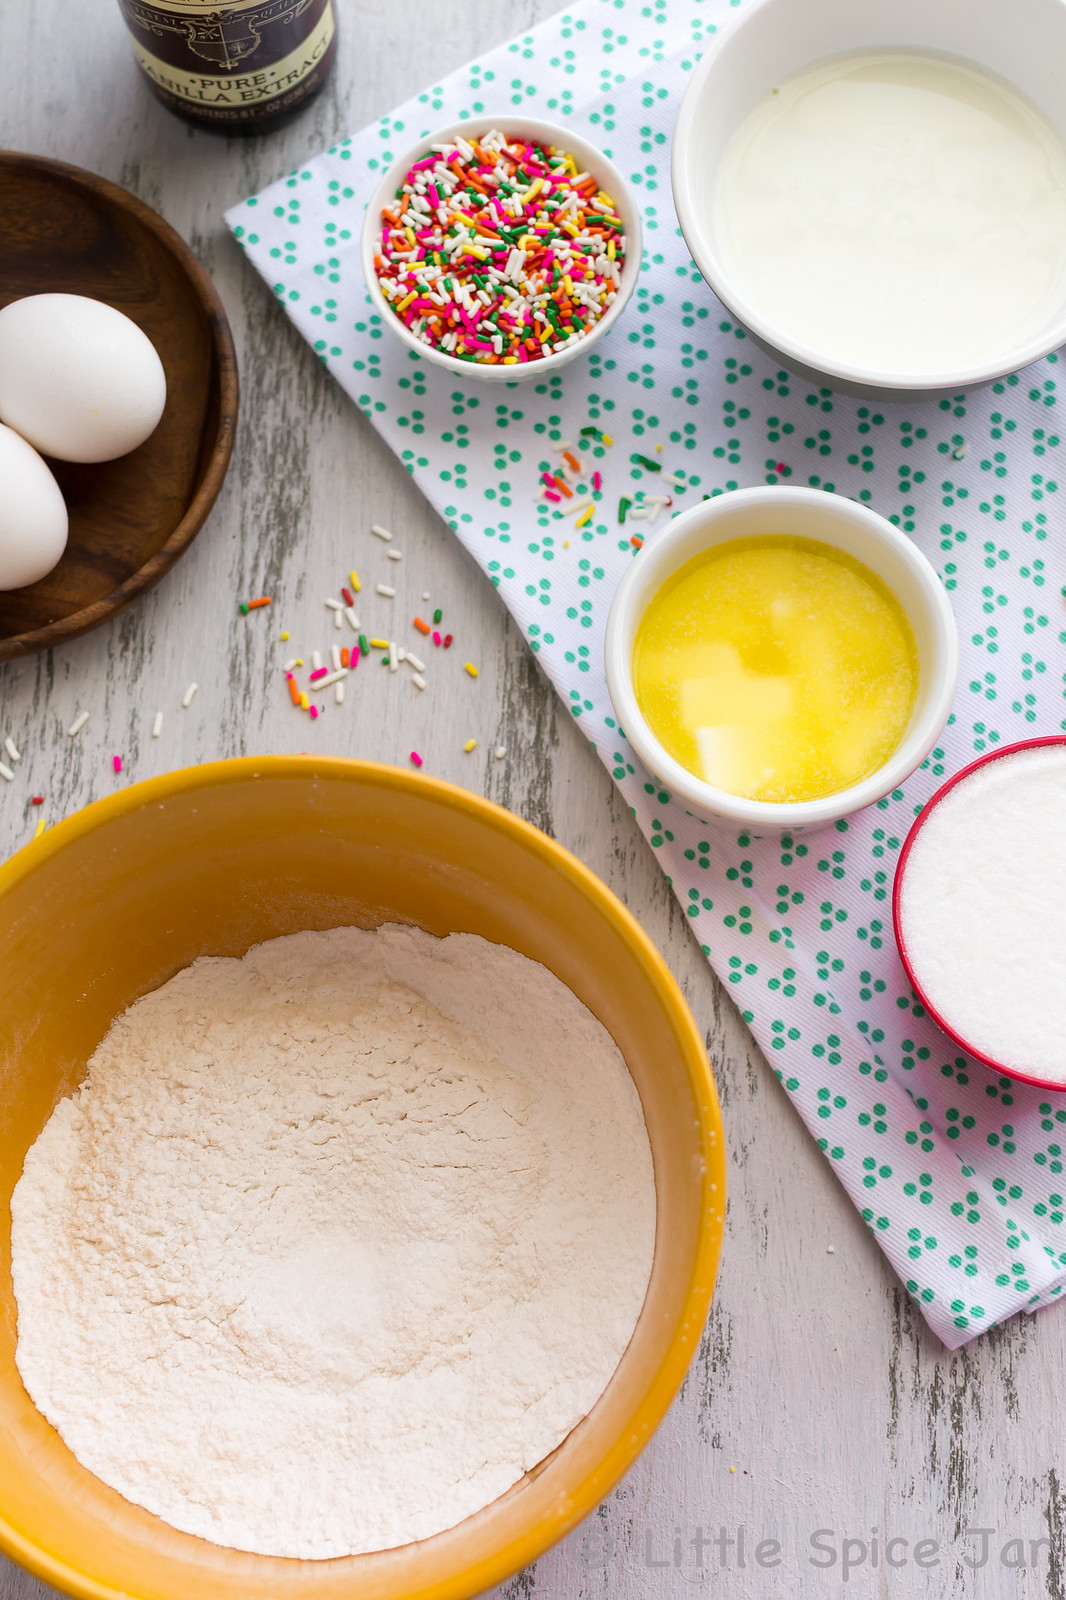 ingredients for funfetti cupcakes on white surface